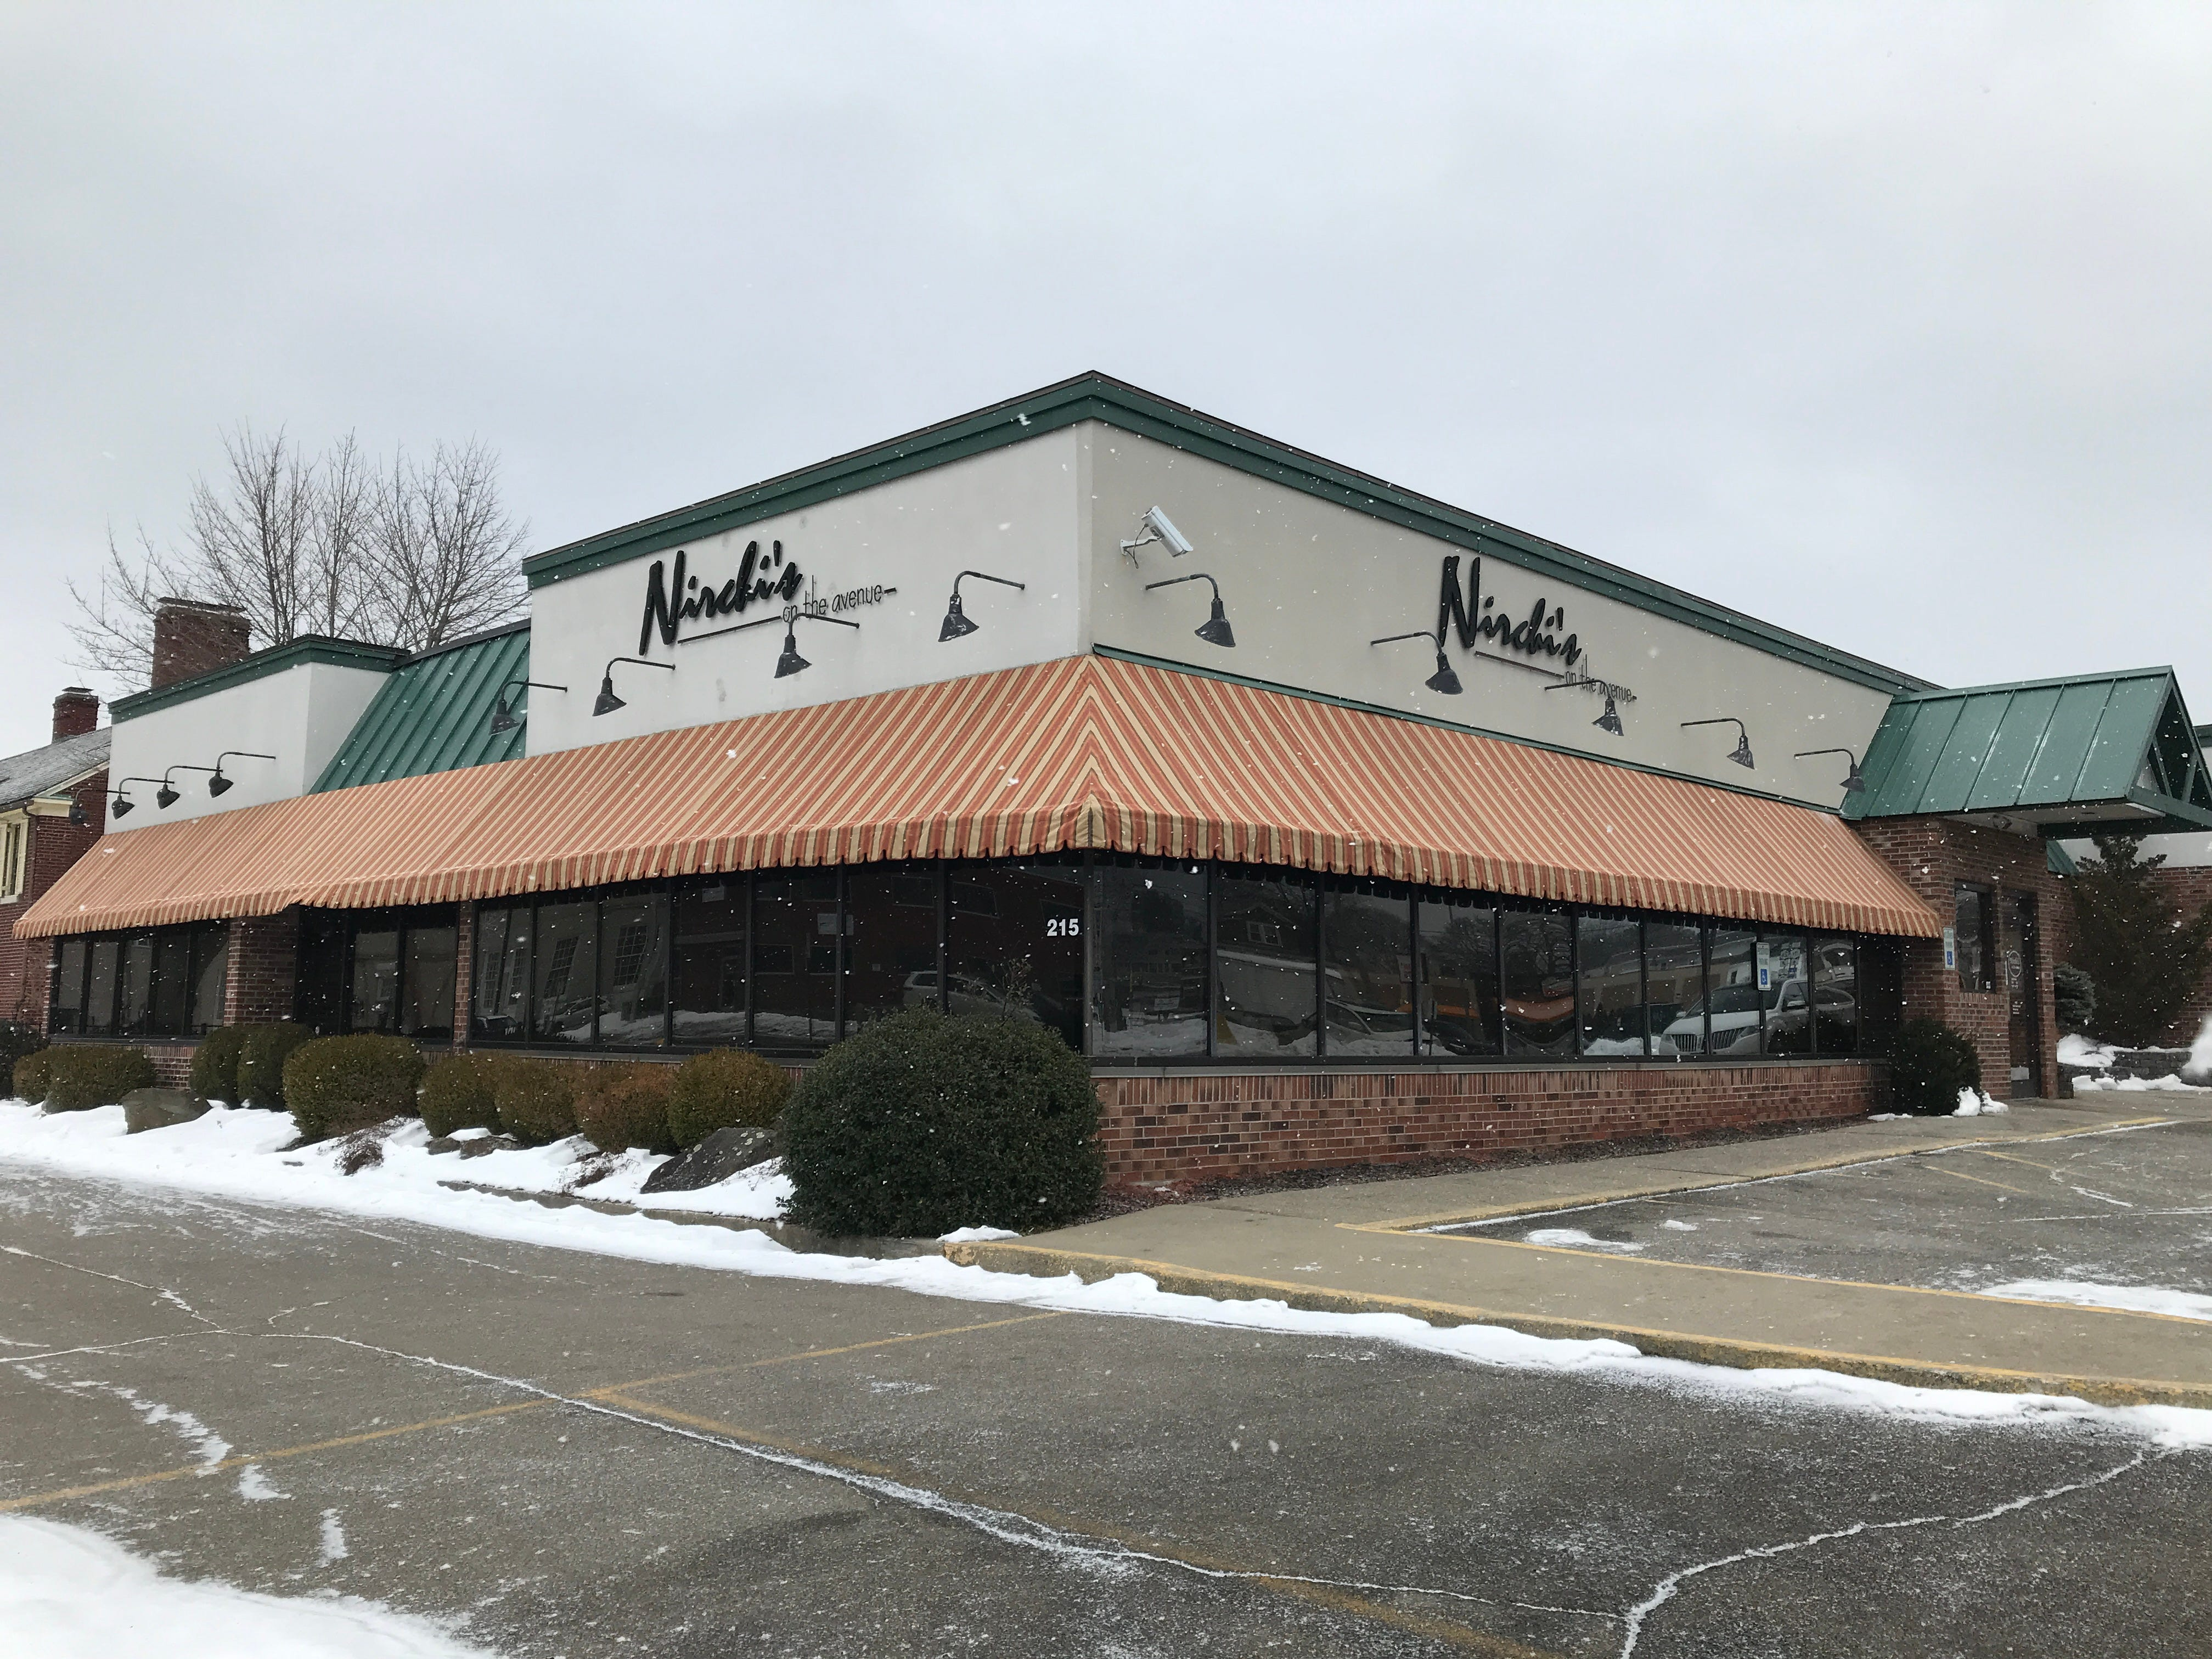 Nirchi's on the Avenue is located on Washington Avenue in Endicott. The restaurant has closed.